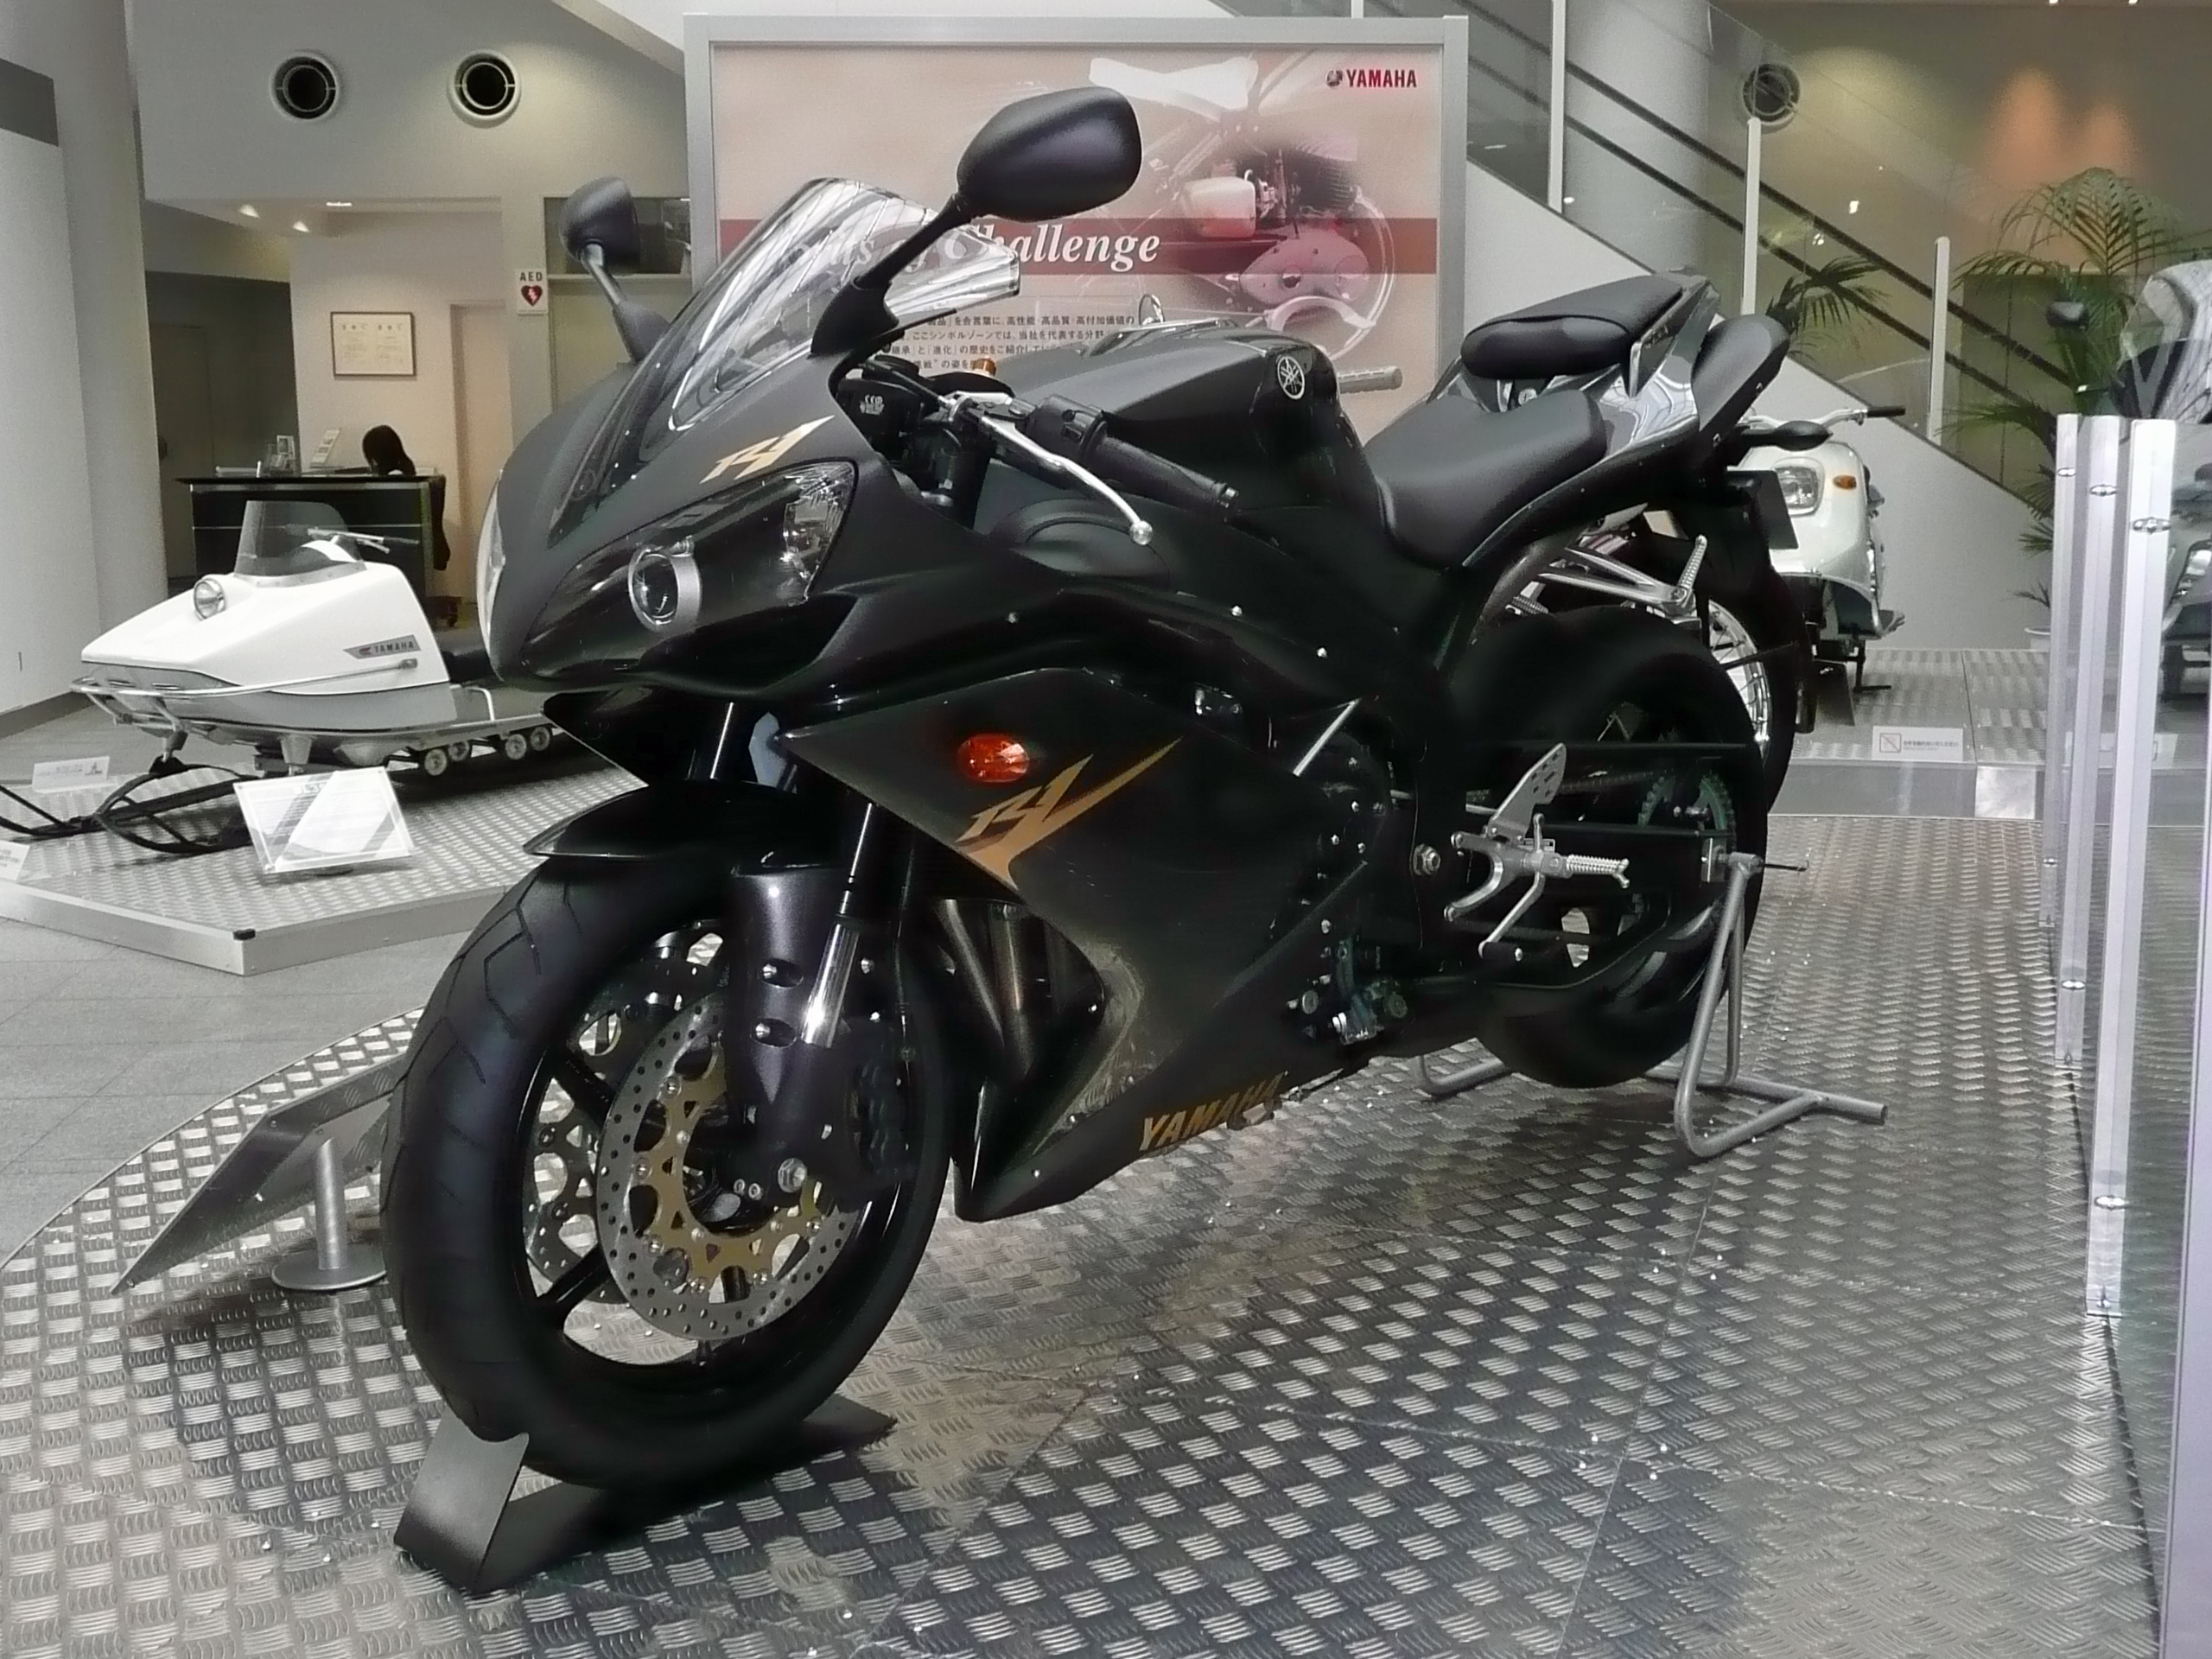 File:YAMAHA YZF-R1 2008 left Yamaha Communication Plaza.jpg ...